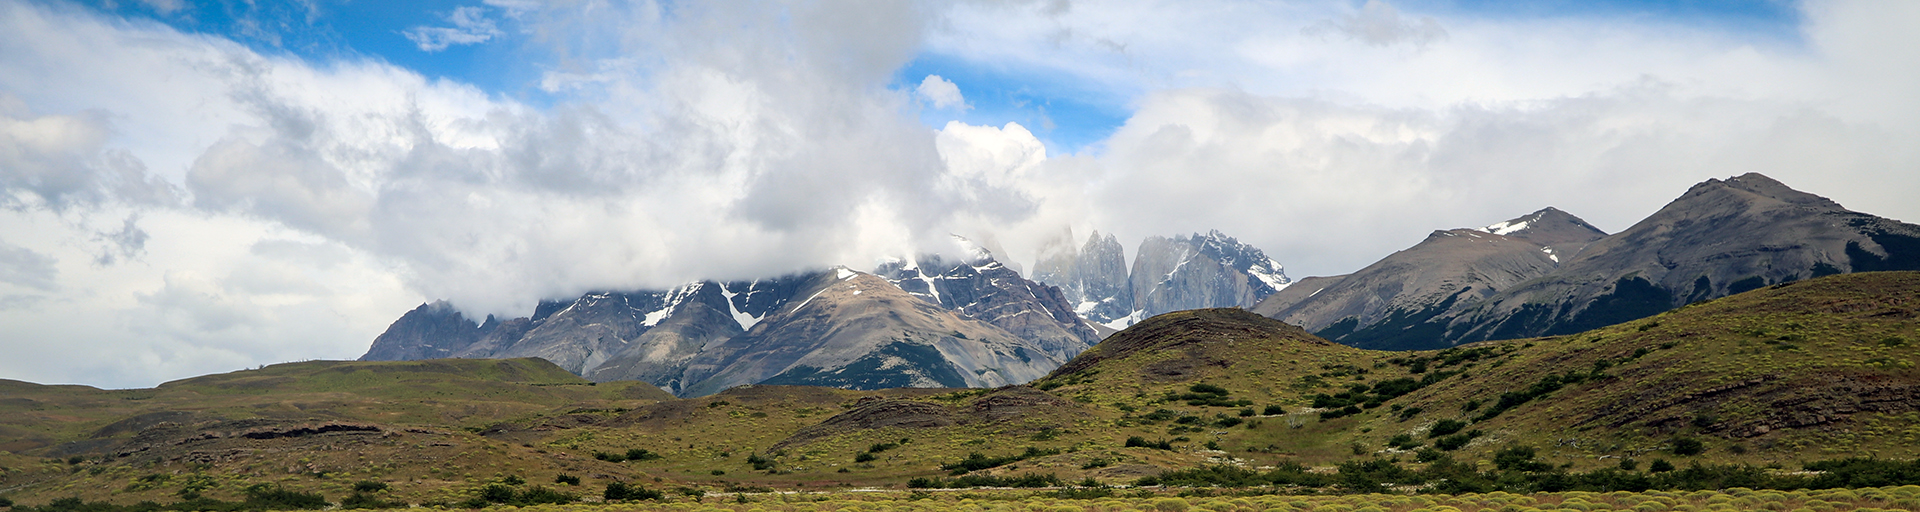 Torres del Paine | Mountains in clouds